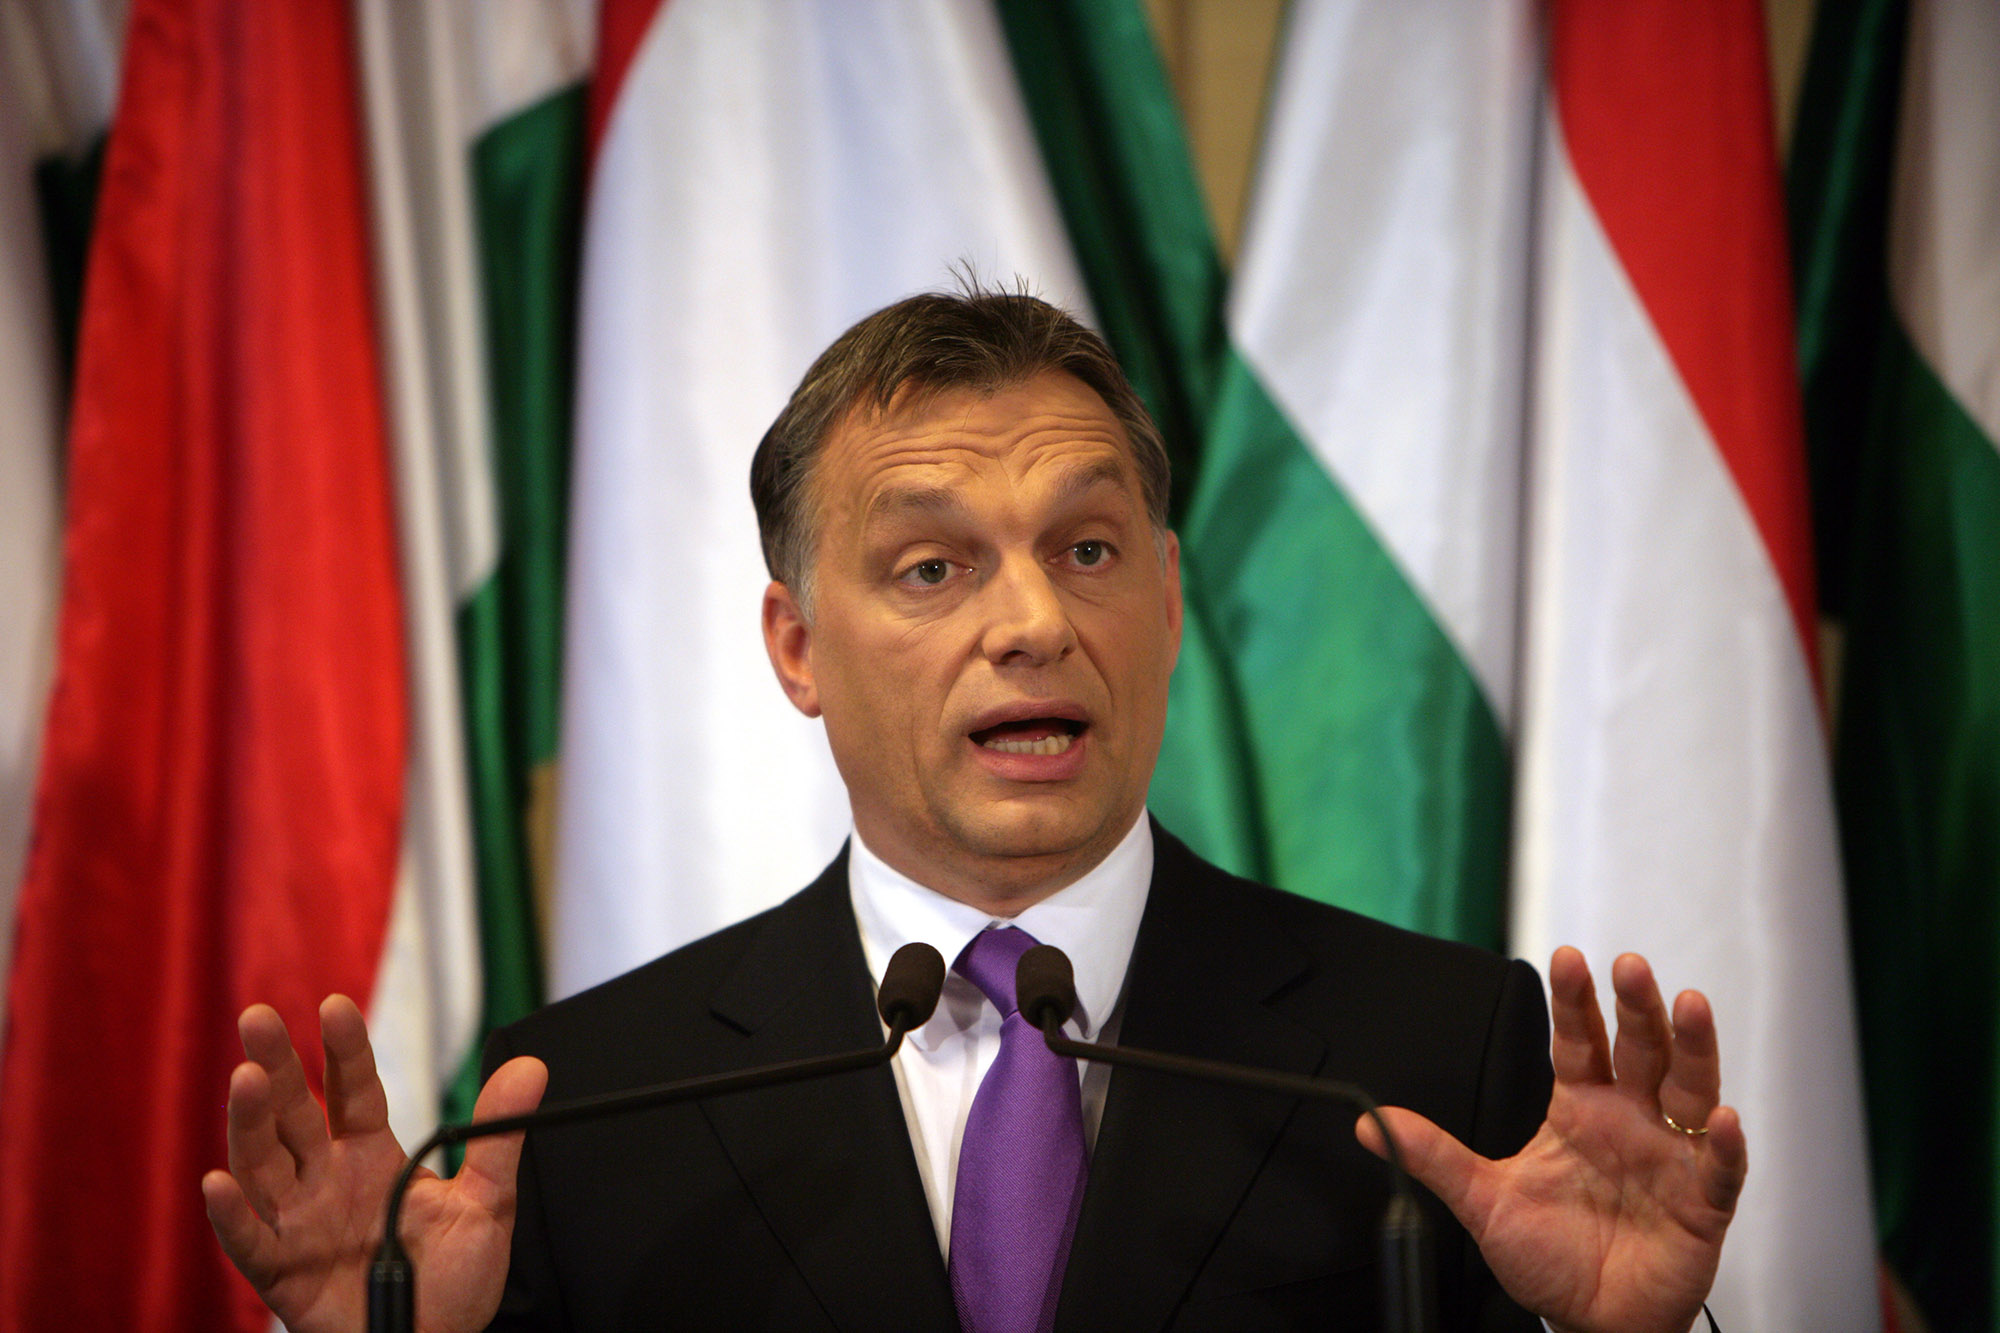 Hungarian flag background with Viktor Orban